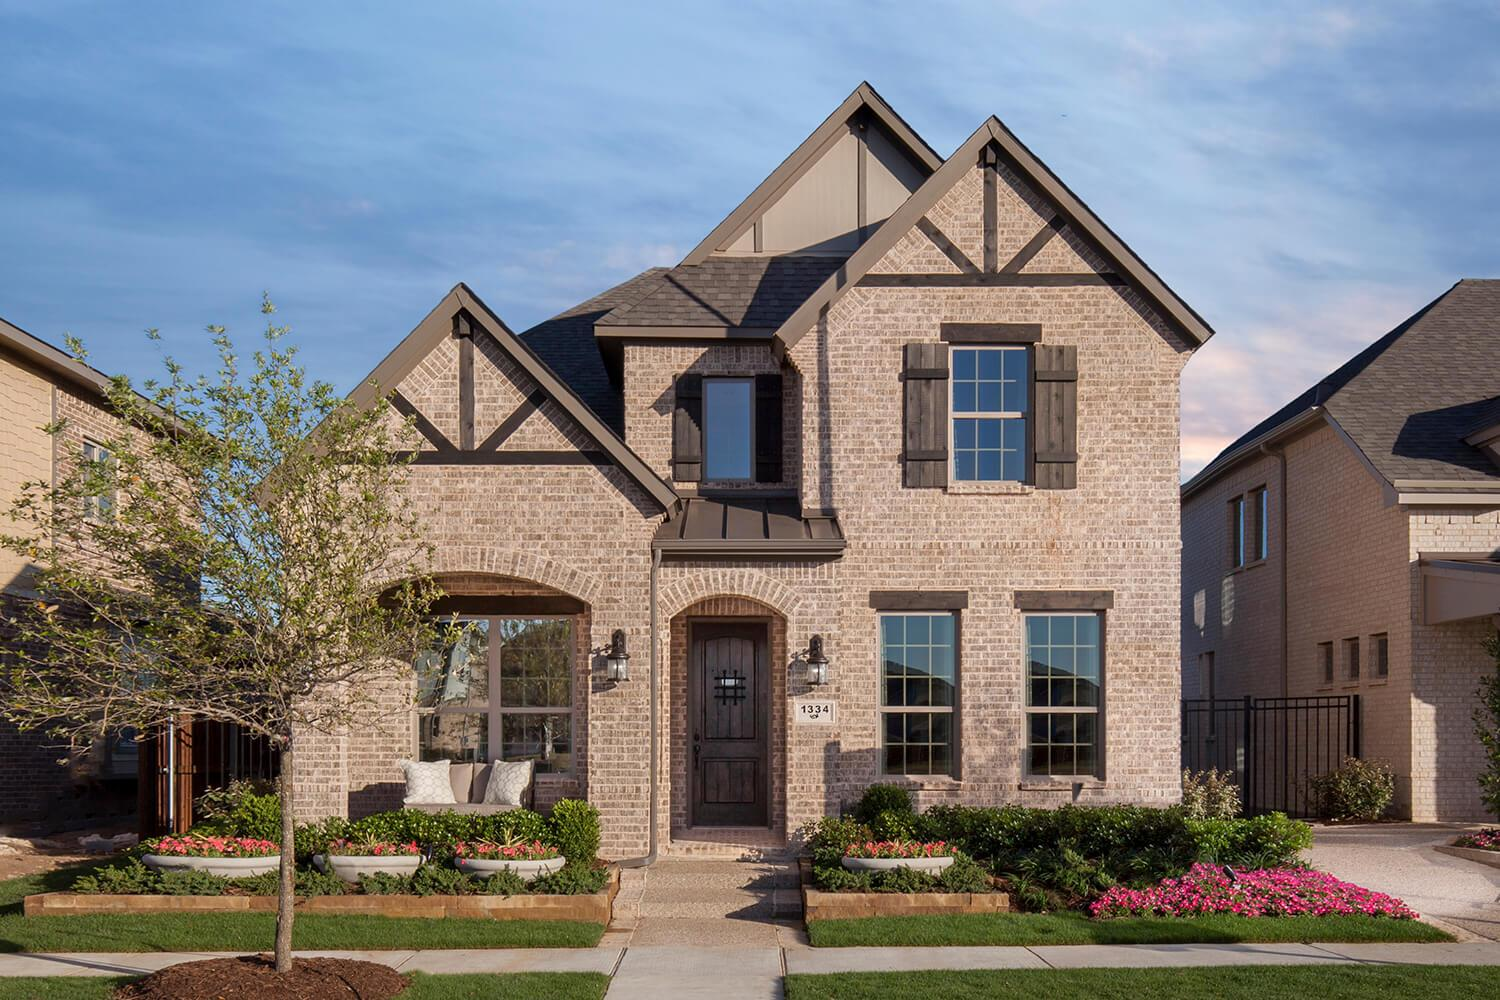 Charming Viridian Chalet Series By Plantation Homes In Fort Worth Texas